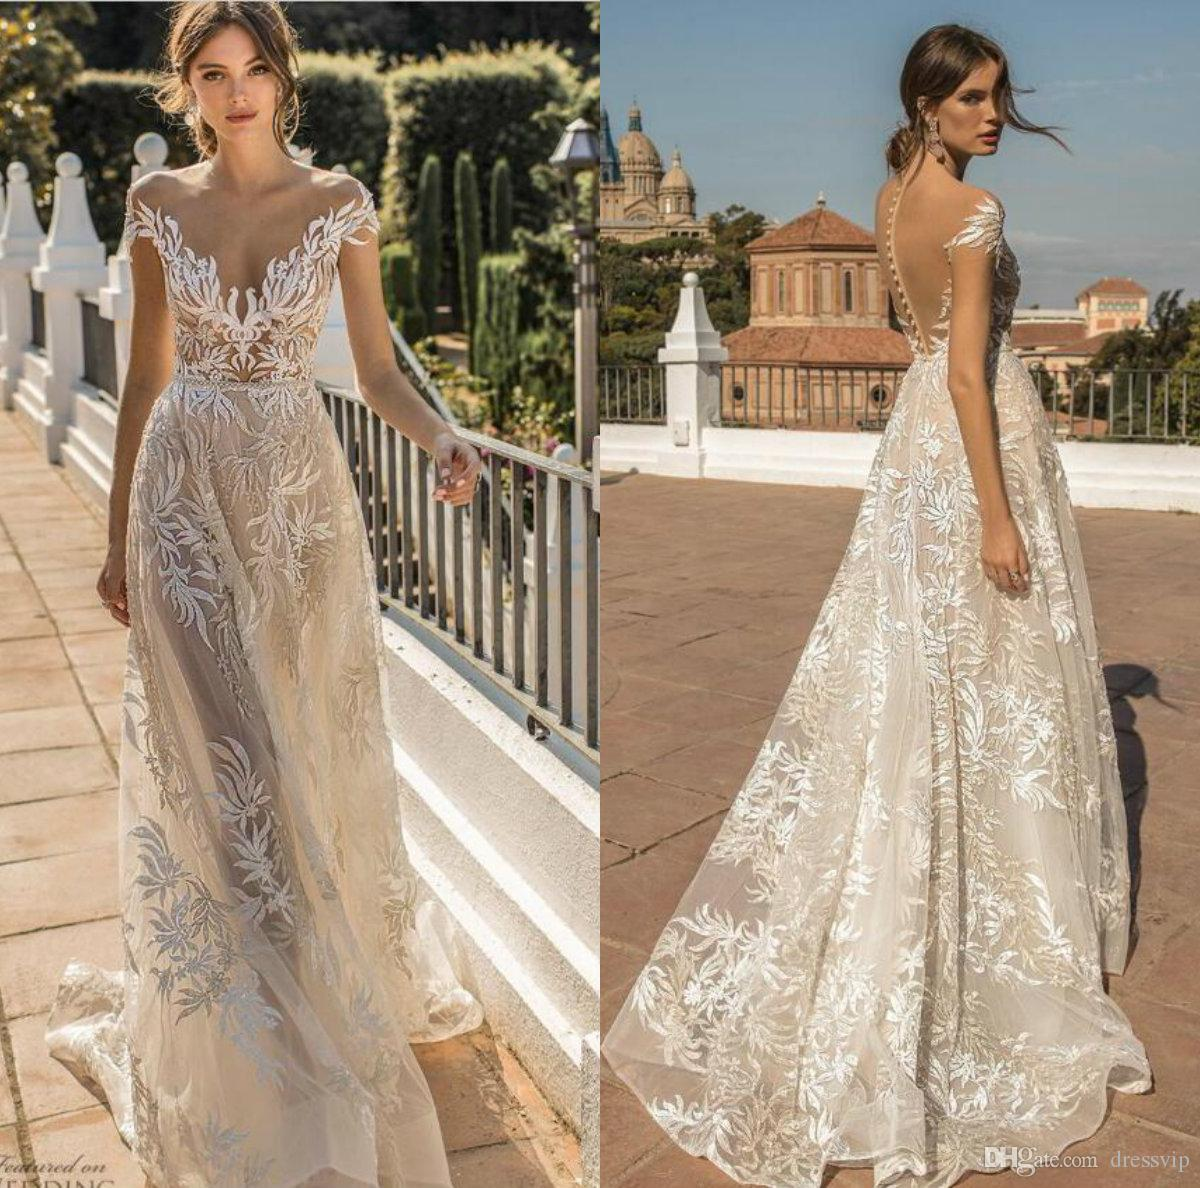 d441277773 Discount 2019 Muse By Berta Wedding Dresses Off The Shoulder A Line Button  Back Illusion Boho Bridal Gowns Custom Made Plus Size Wedding Dress Wedding  ...